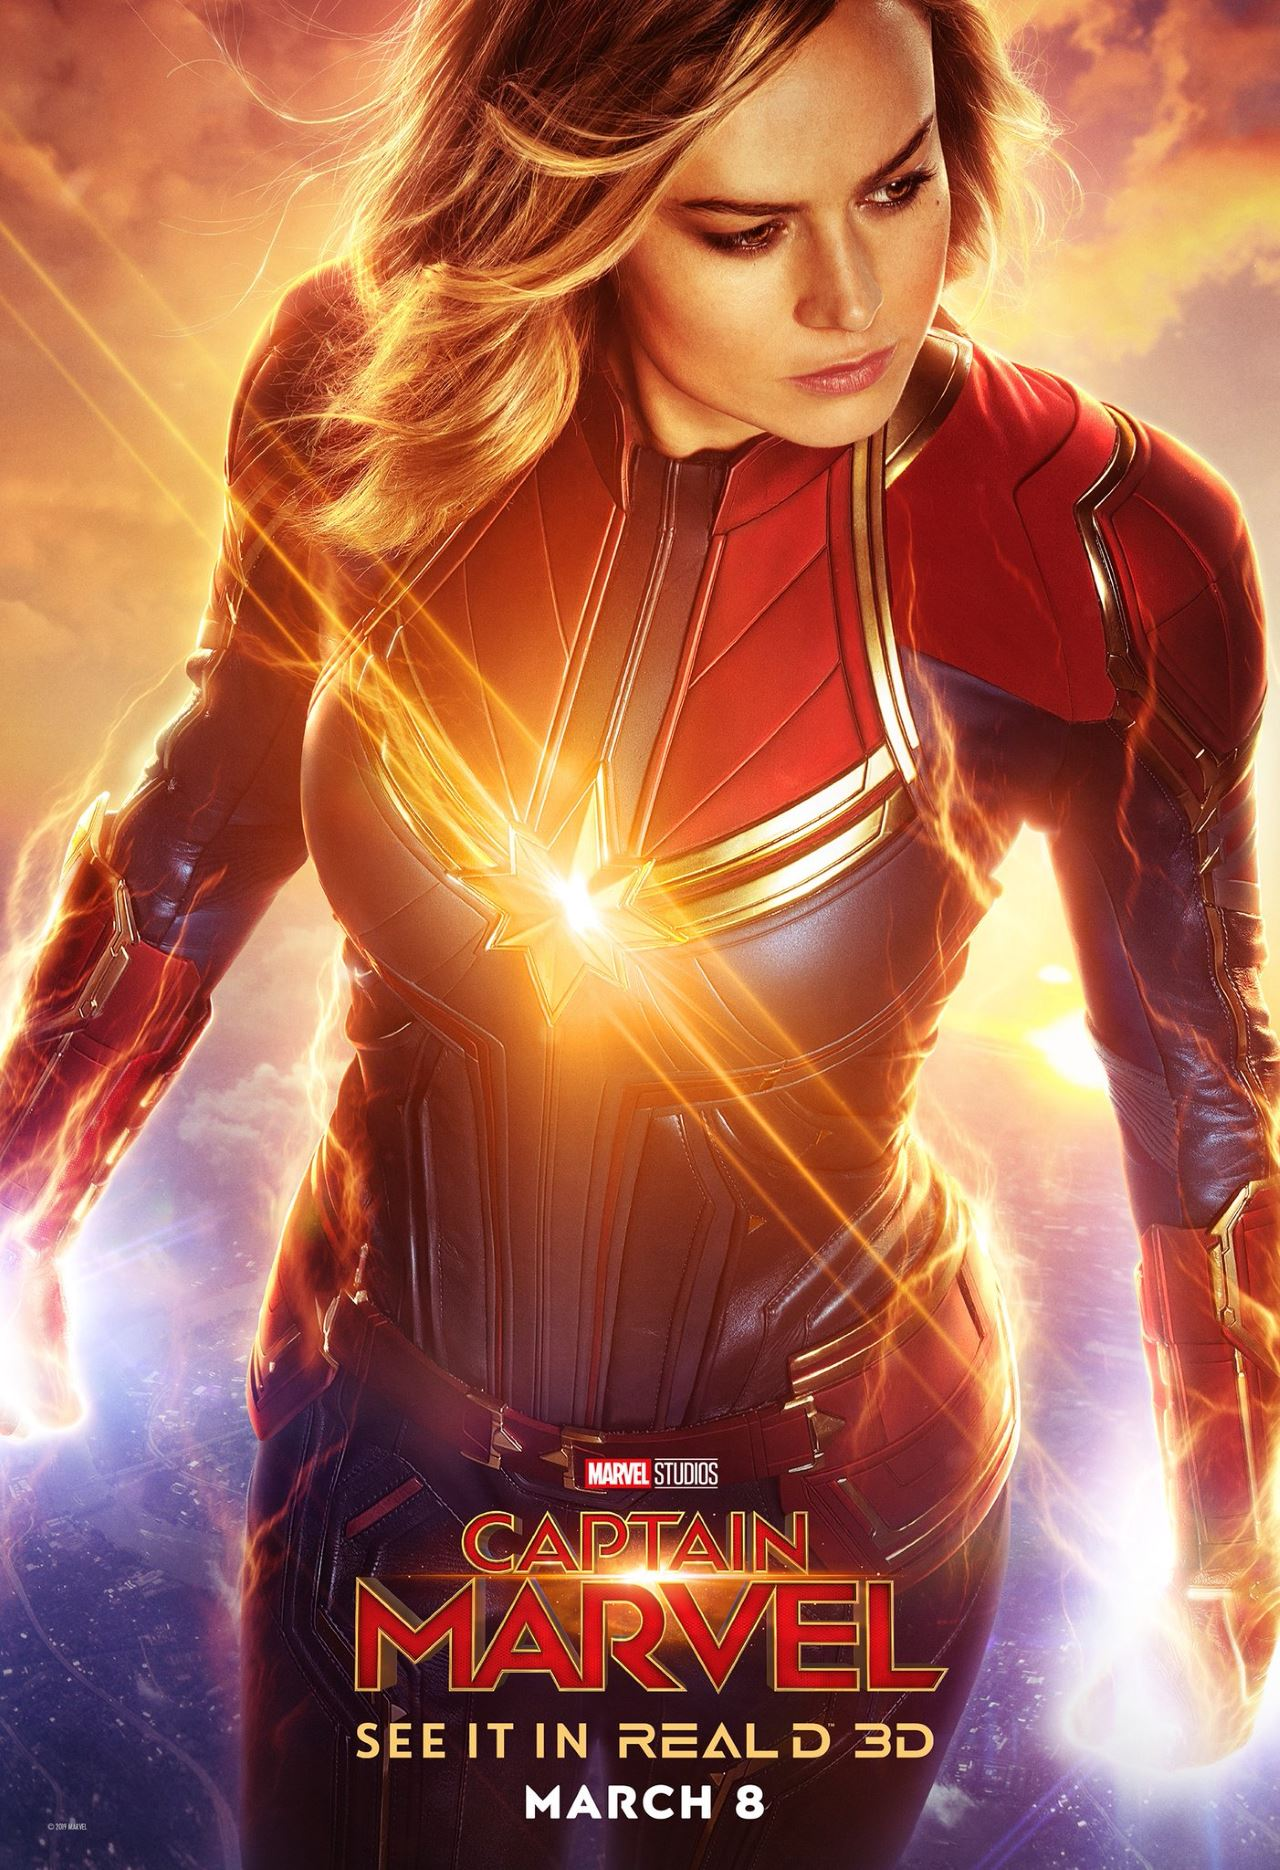 captain marvel poster real d 3d Captain Marvel